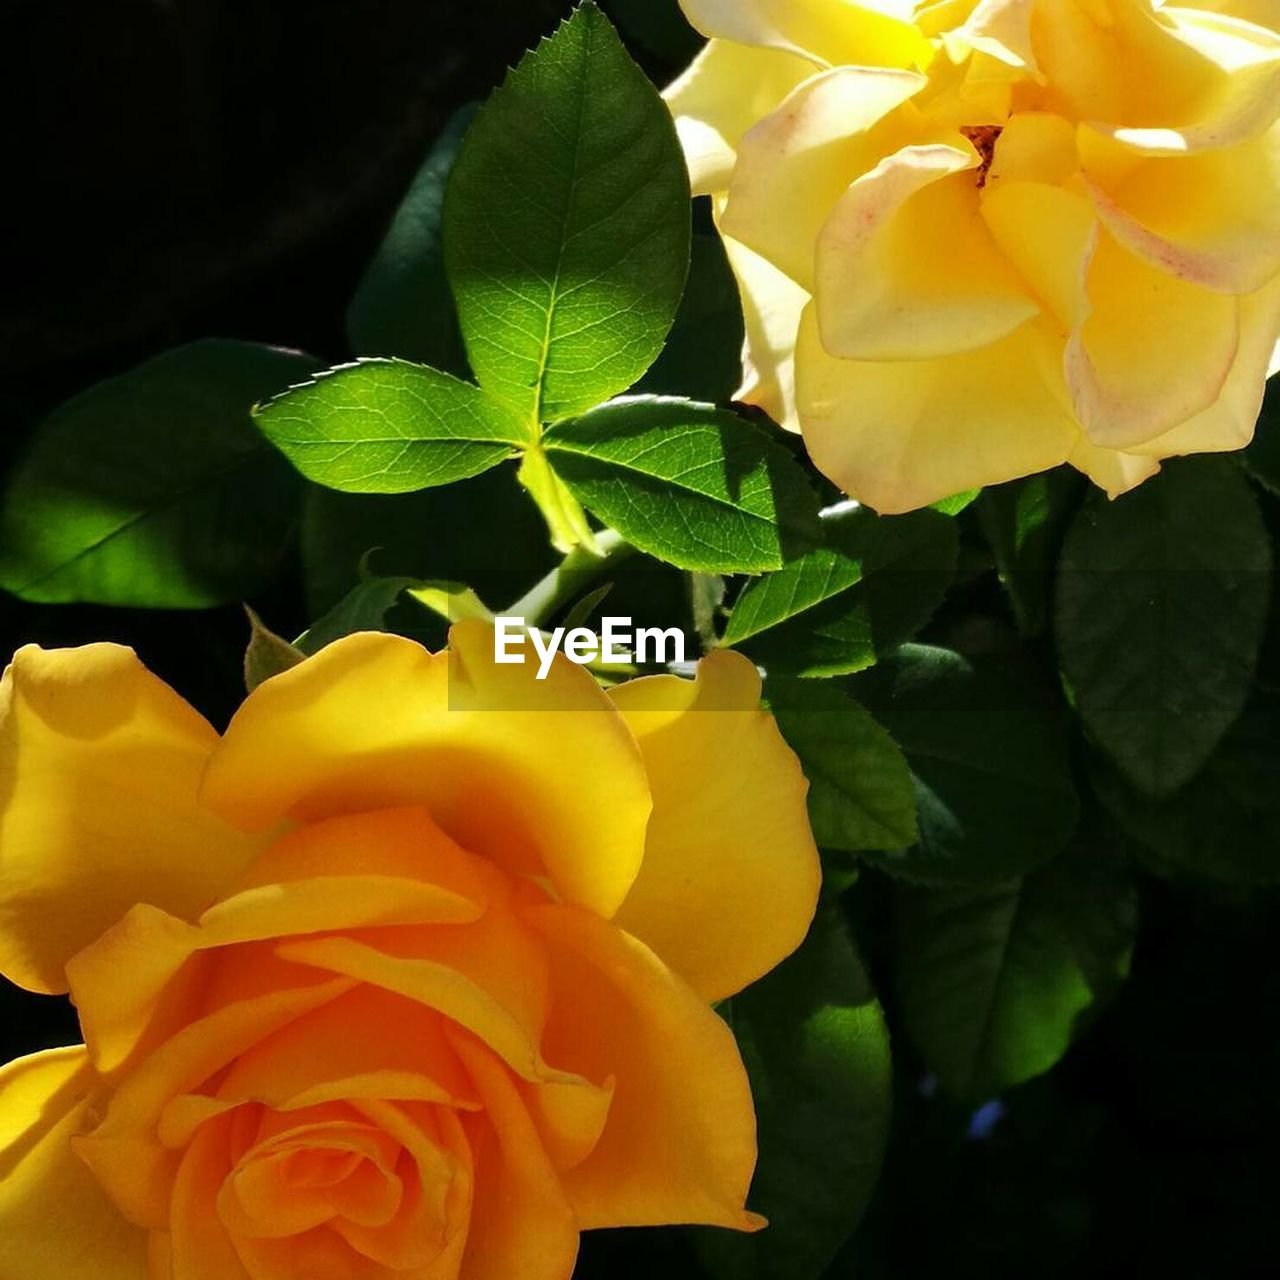 flower, petal, beauty in nature, freshness, nature, fragility, flower head, leaf, growth, yellow, plant, rose - flower, blooming, no people, close-up, outdoors, day